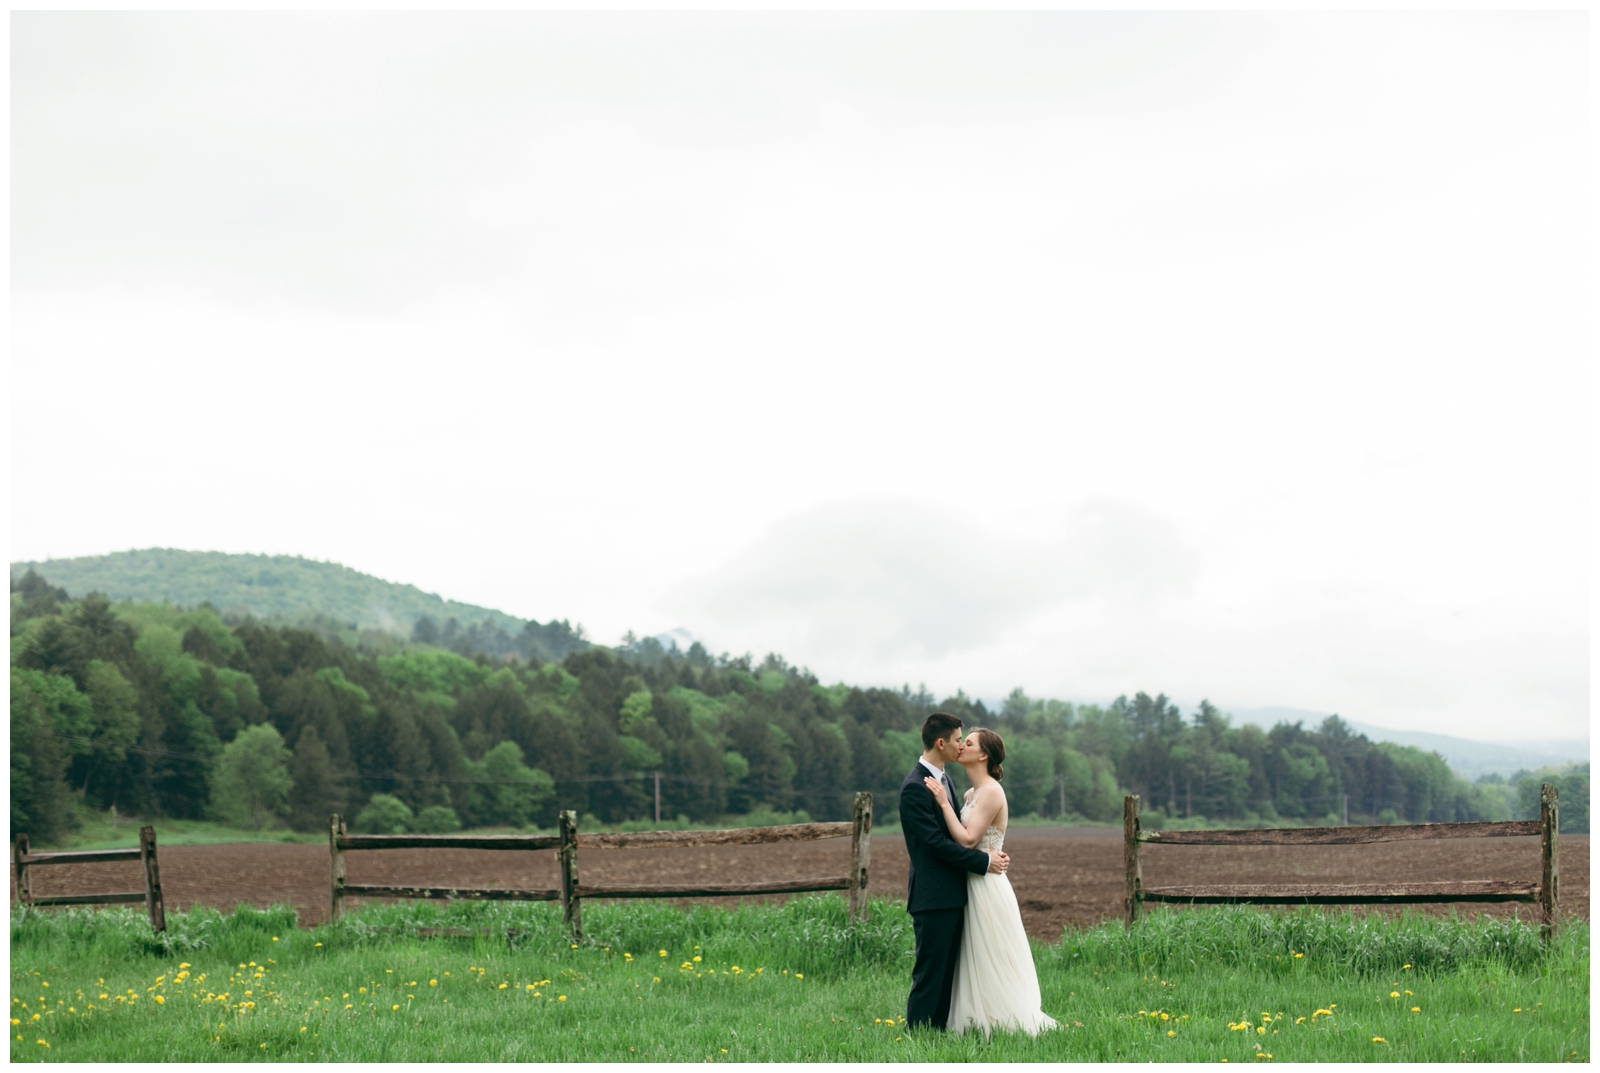 Vermont-Elopement-Topnotch-Stowe-Wedding-Bailey-Q-Photo-Boston-Wedding-Photographer-001.jpg